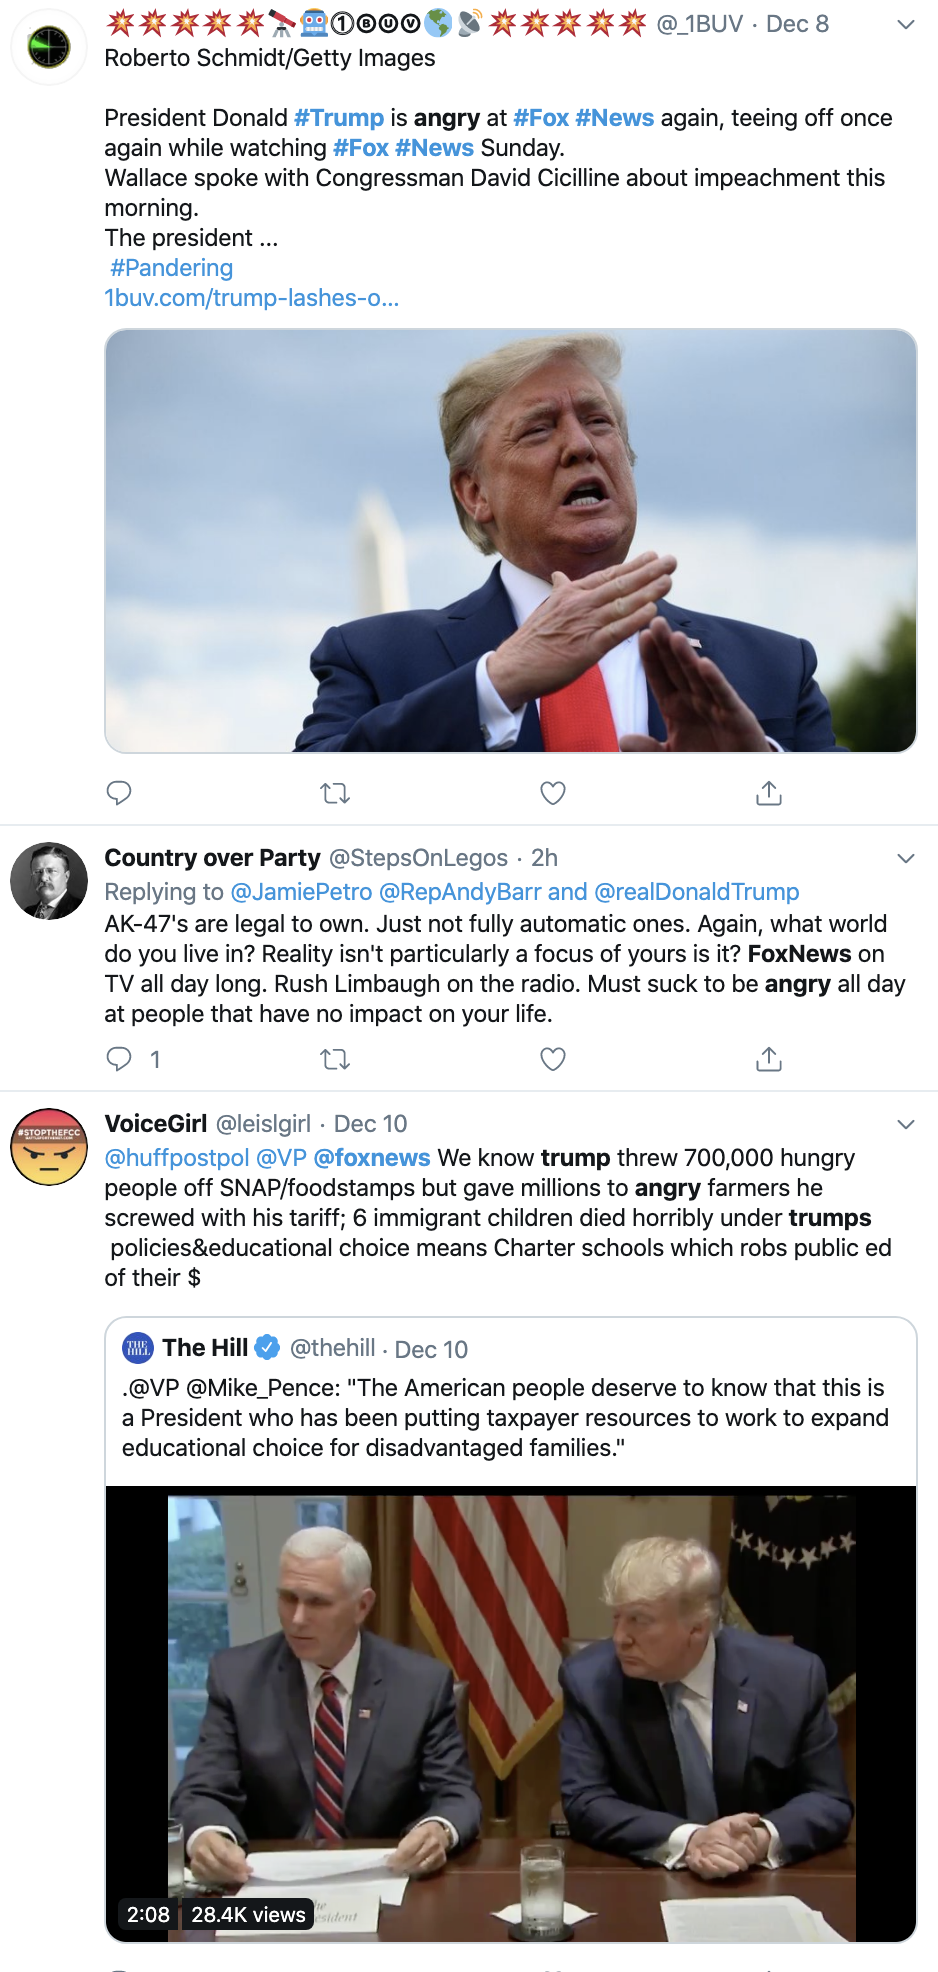 Screen-Shot-2019-12-11-at-11.26.51-AM Ex-WH Staffer Betrays Trump & Leaks Fox News Feud Info To 'Vanity Fair' Featured Impeachment Media Television Top Stories